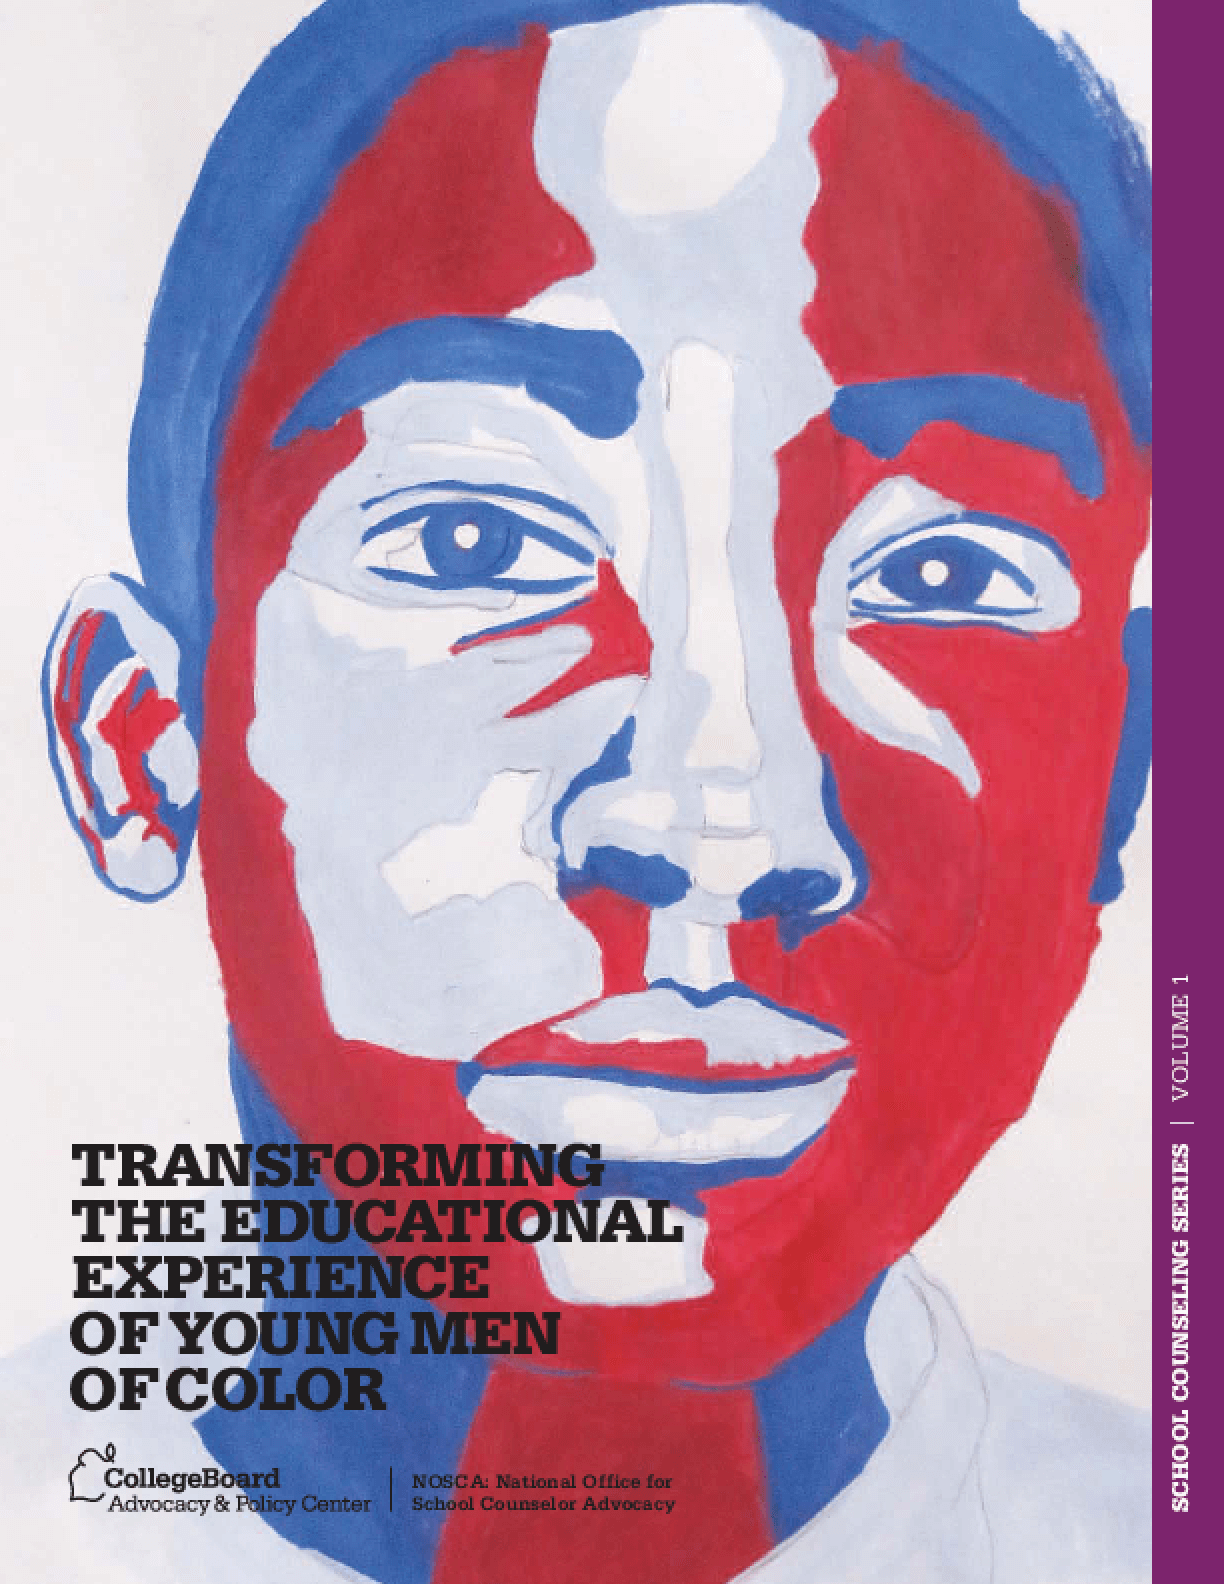 Transforming the Educational Experience of Young Men of Color